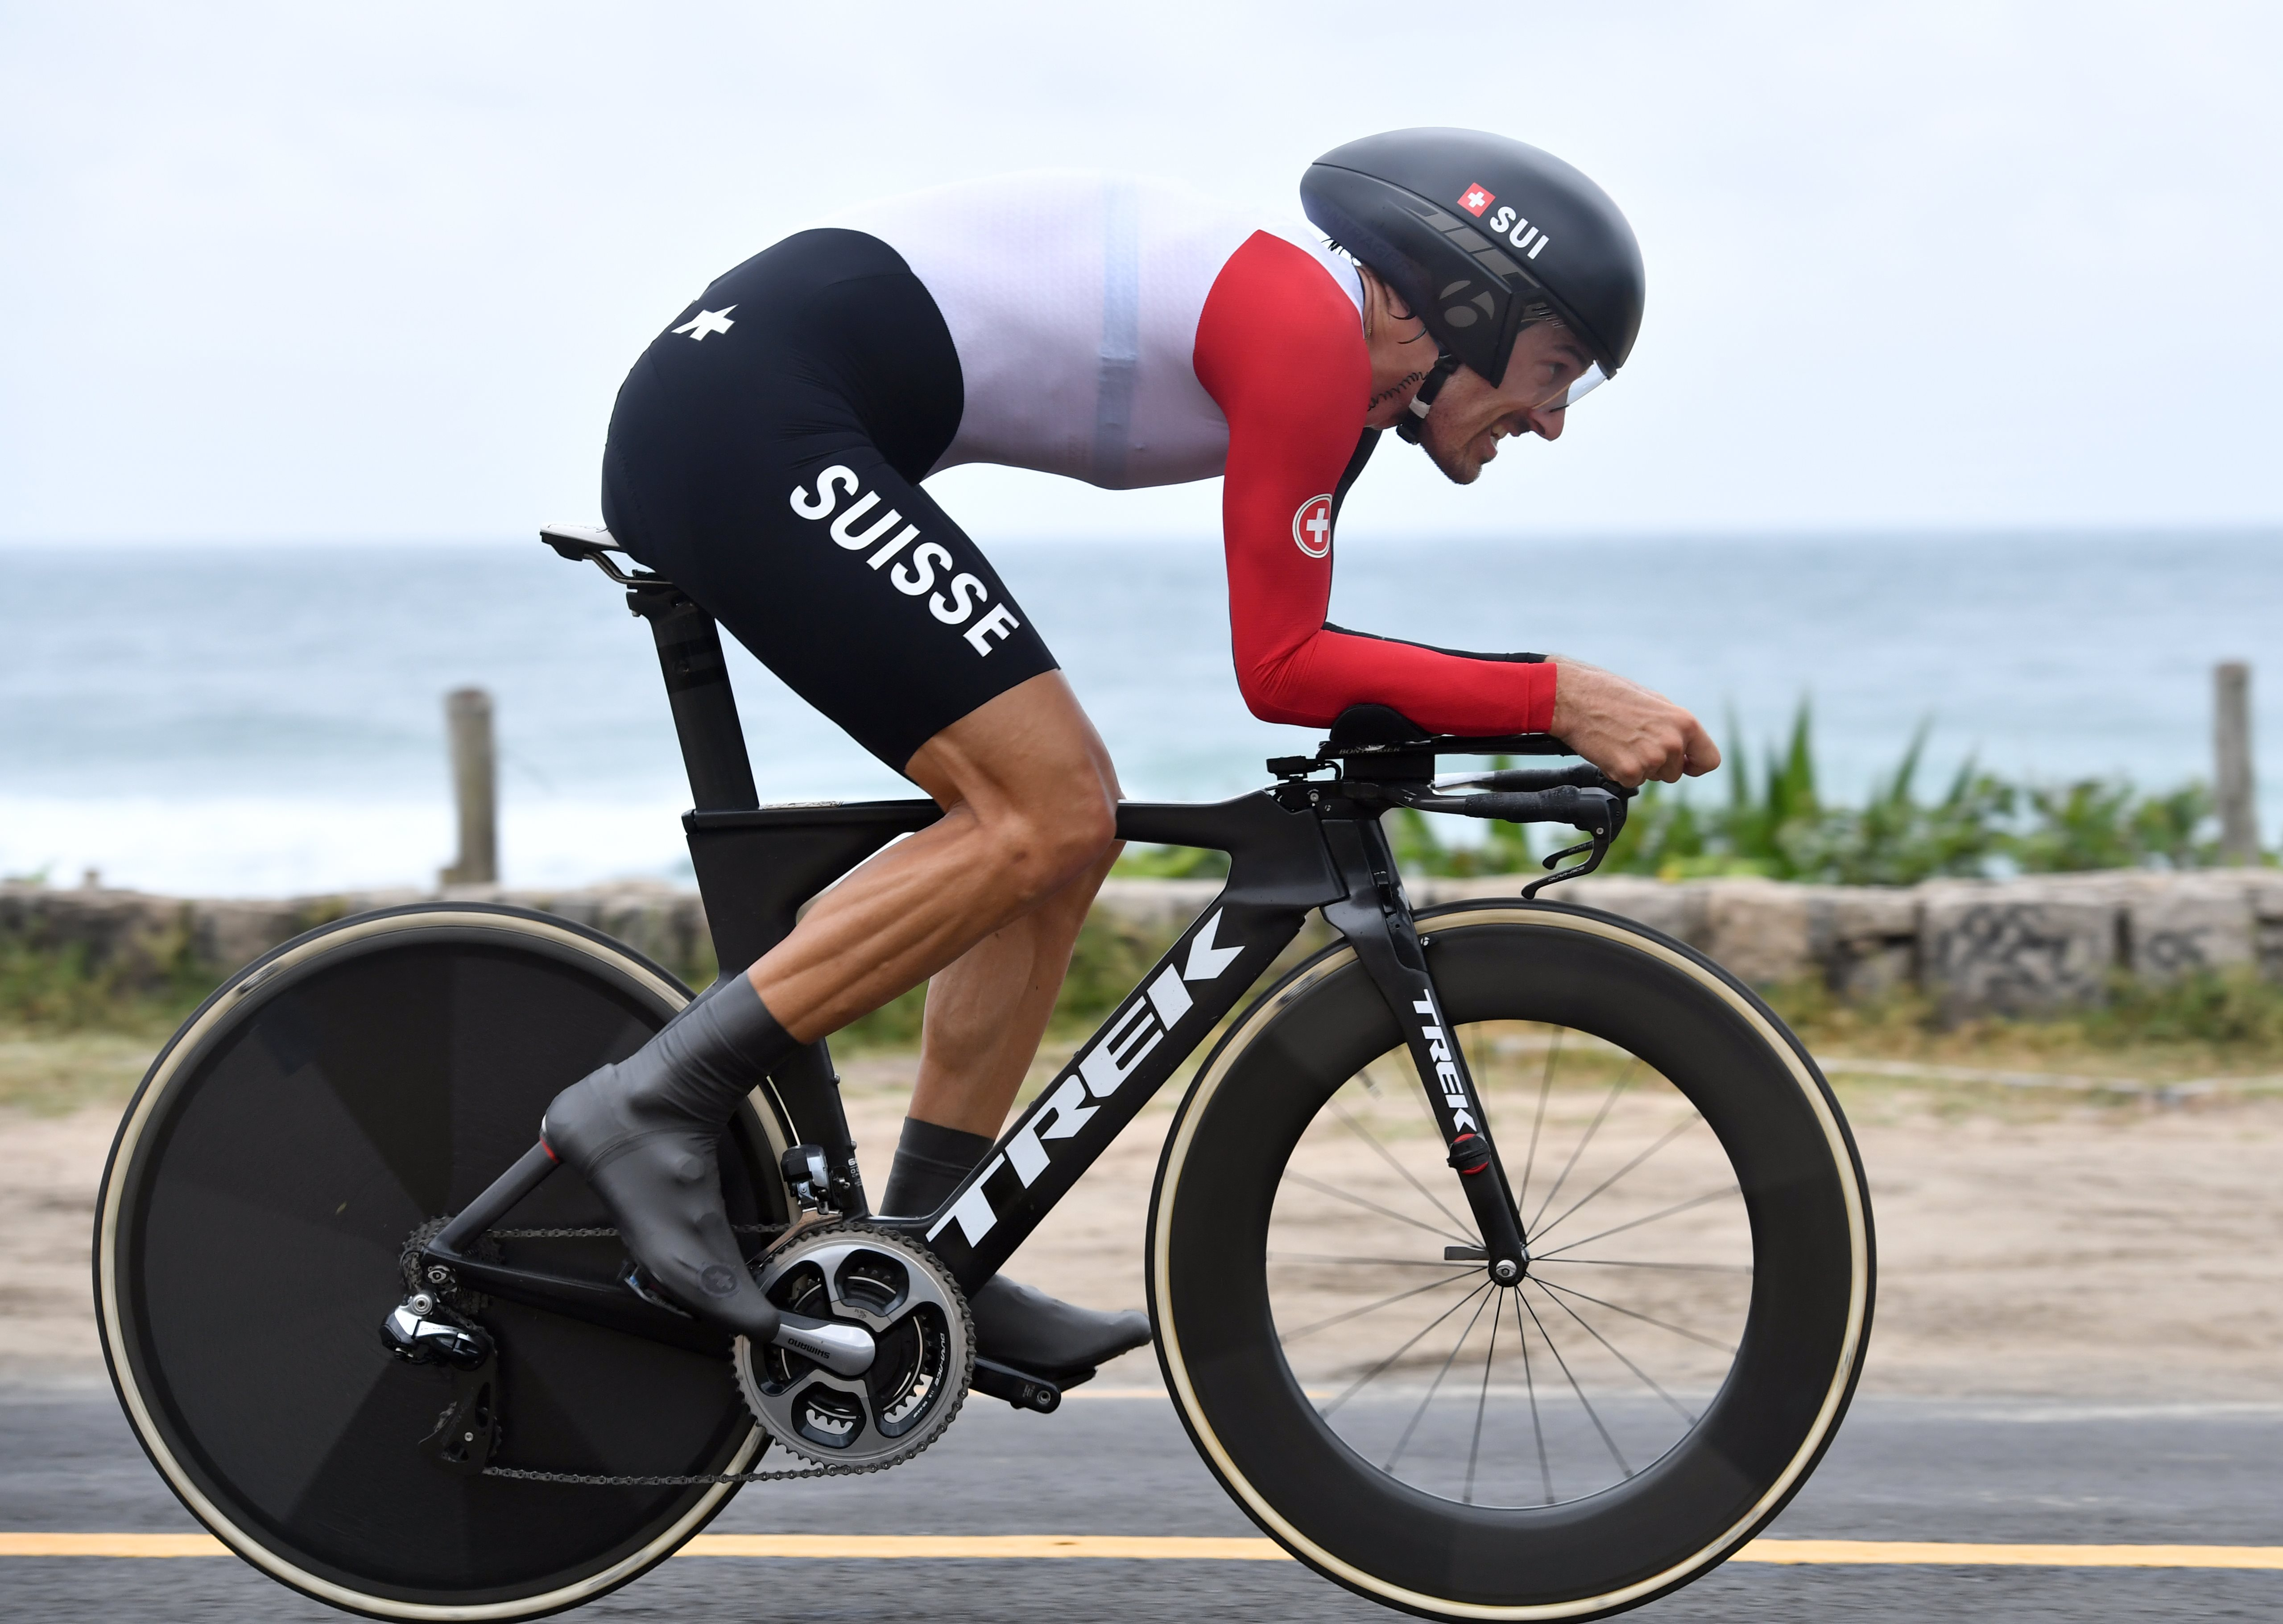 Fabian Cancellara S Top 11 Time Trial Tips Cycling Weekly